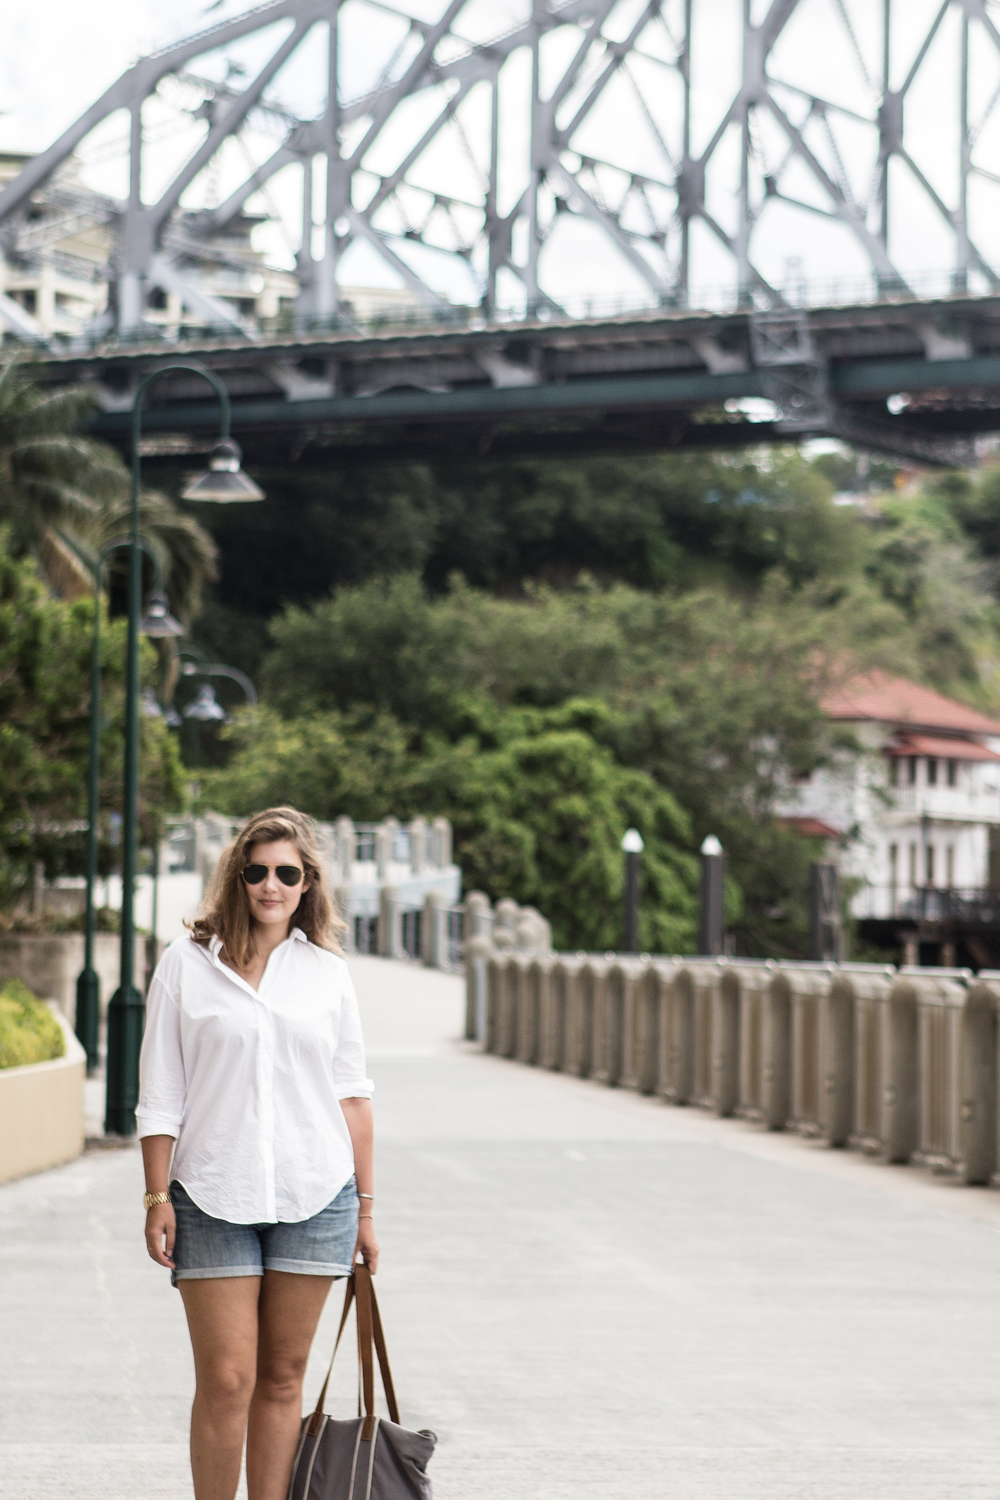 Brisbane City river walk | The Spring Blog